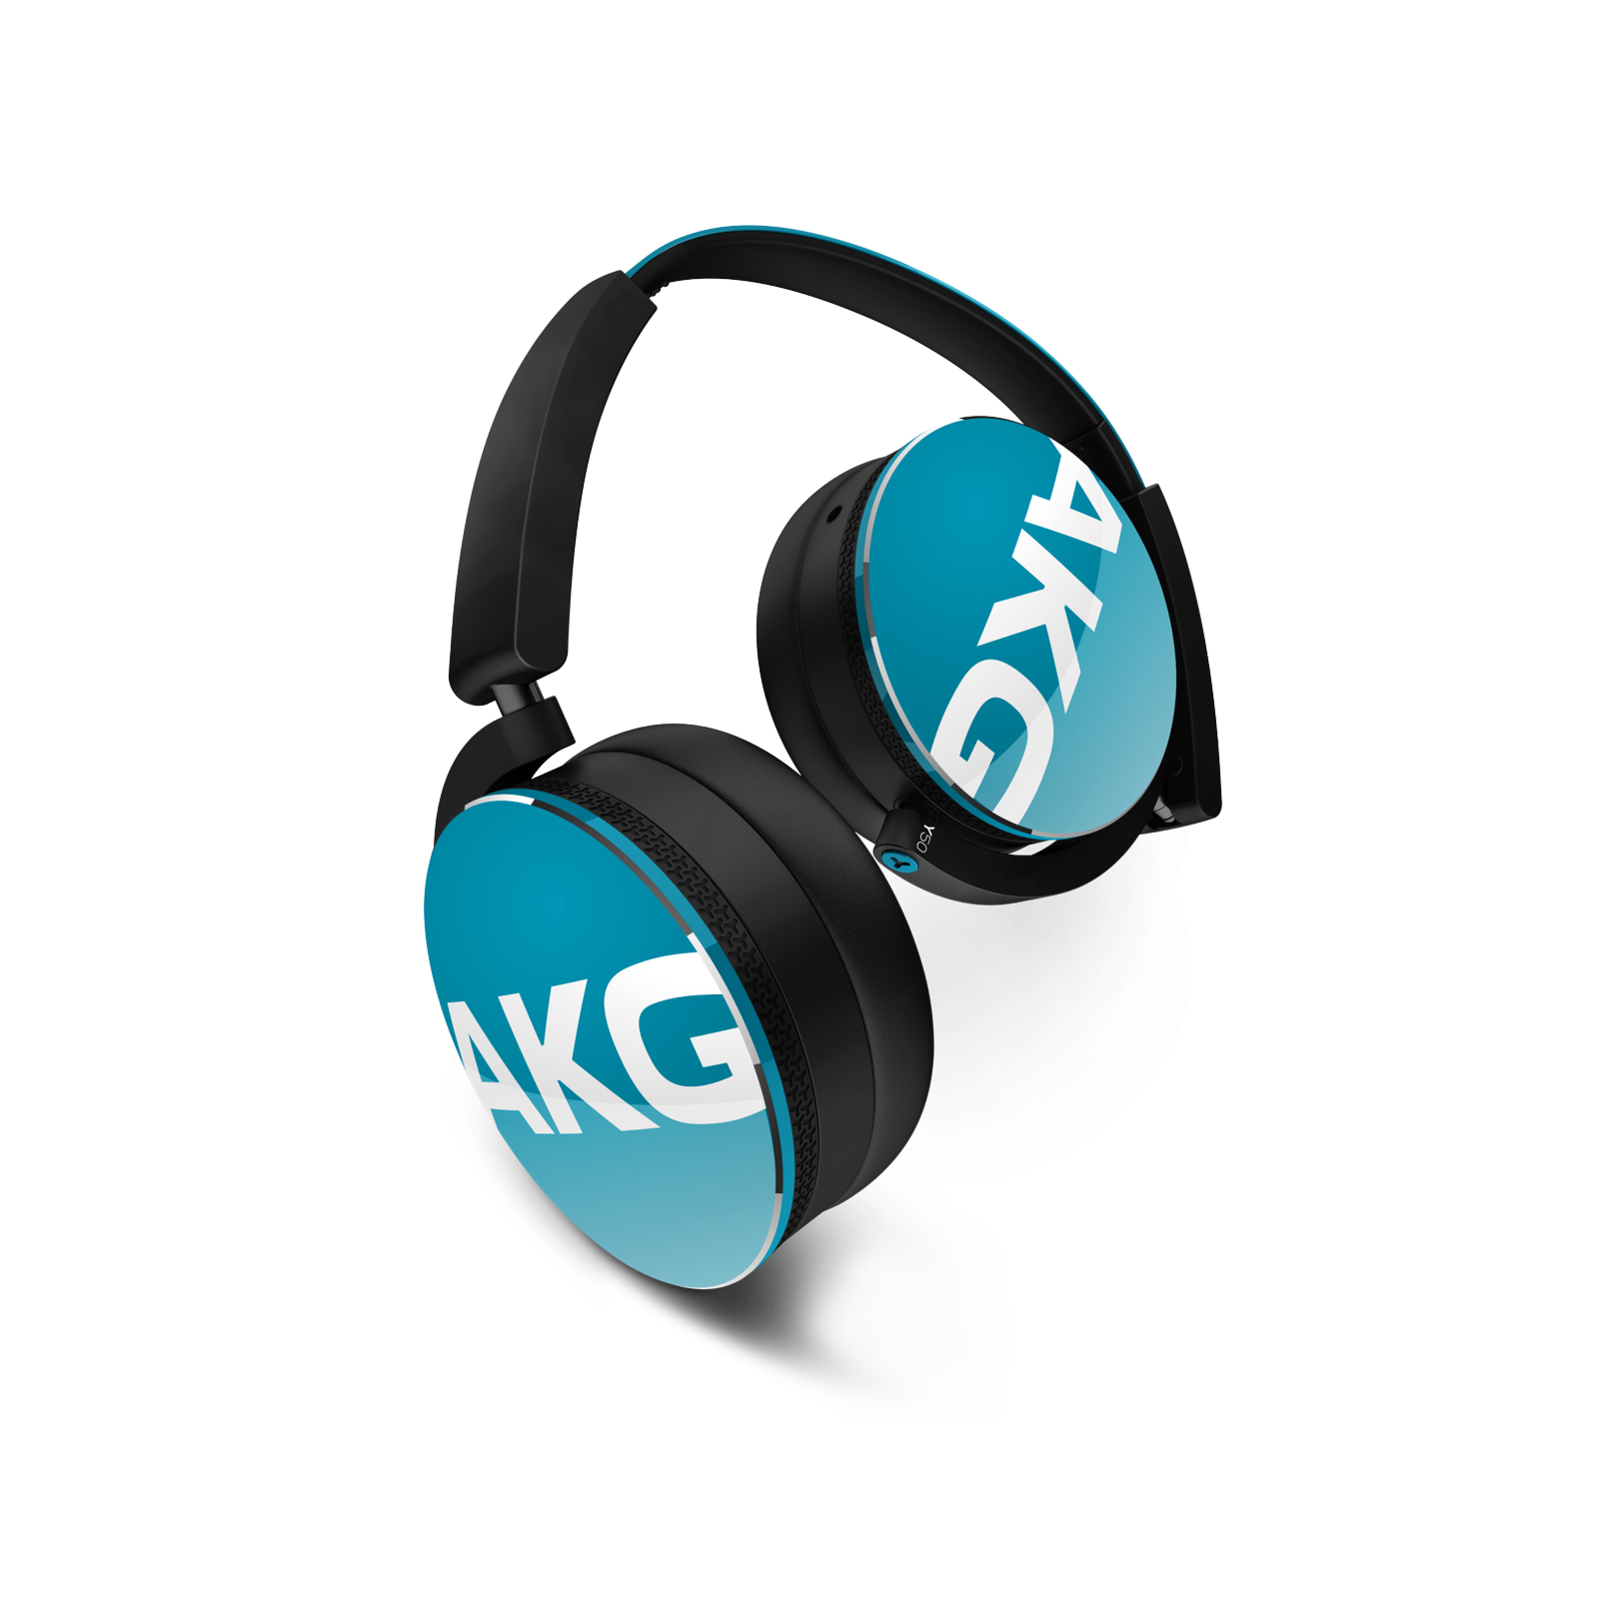 Y50 - Blue - On-ear headphones with AKG-quality sound, smart styling, snug fit and detachable cable with in-line remote/mic - Hero